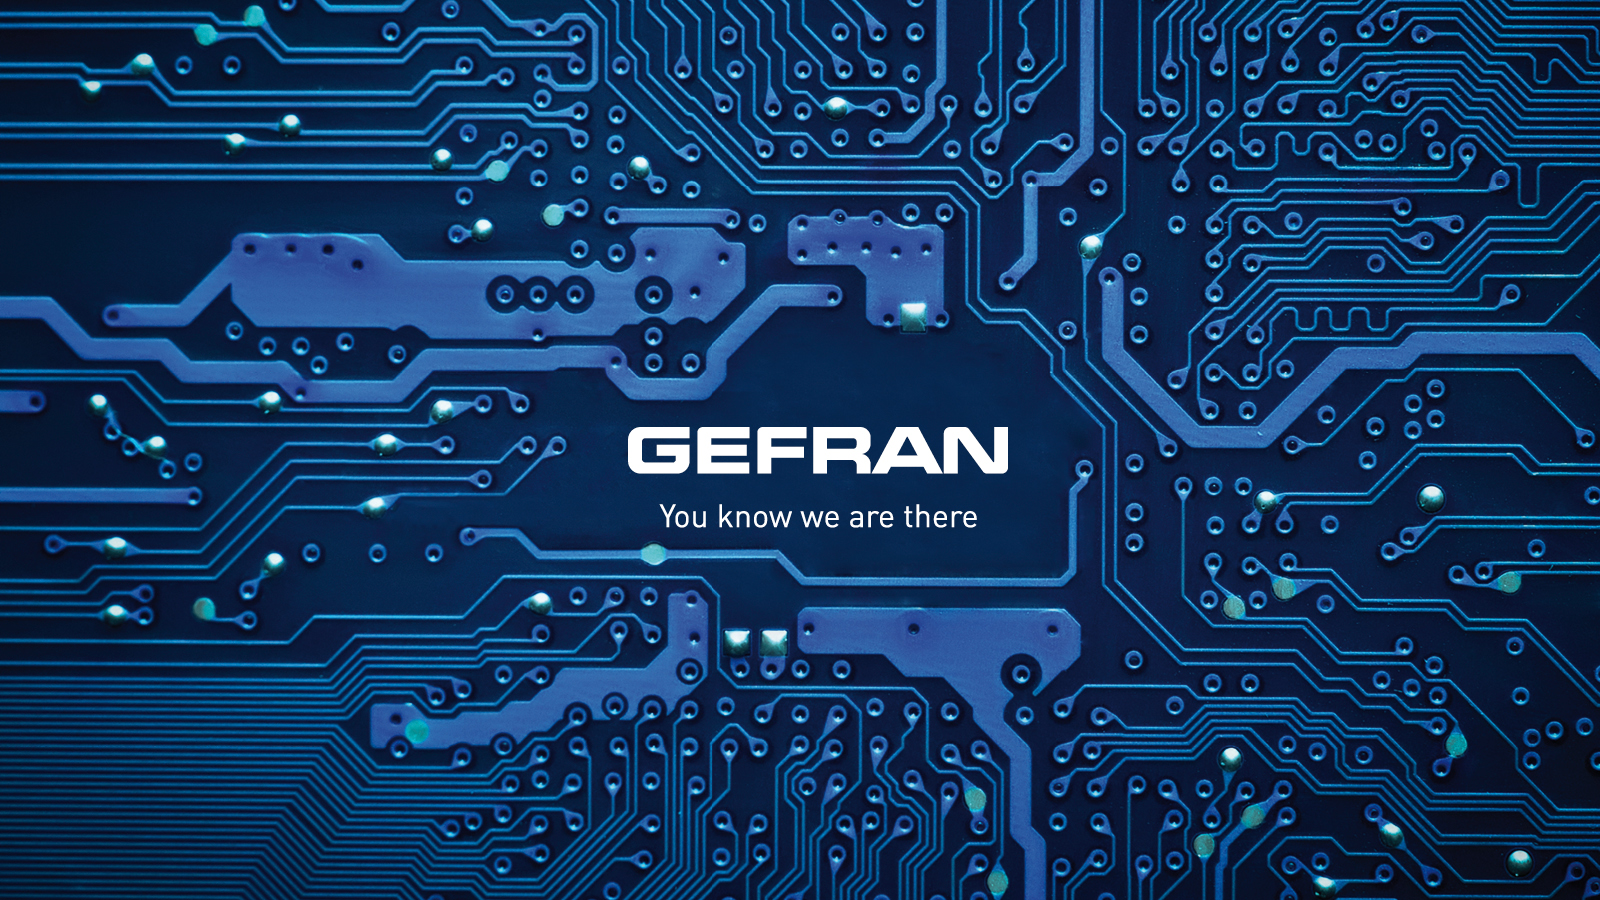 GEFRAN S.p.A Shareholders meeting approves the financial statement and appoints the new Board of Directors